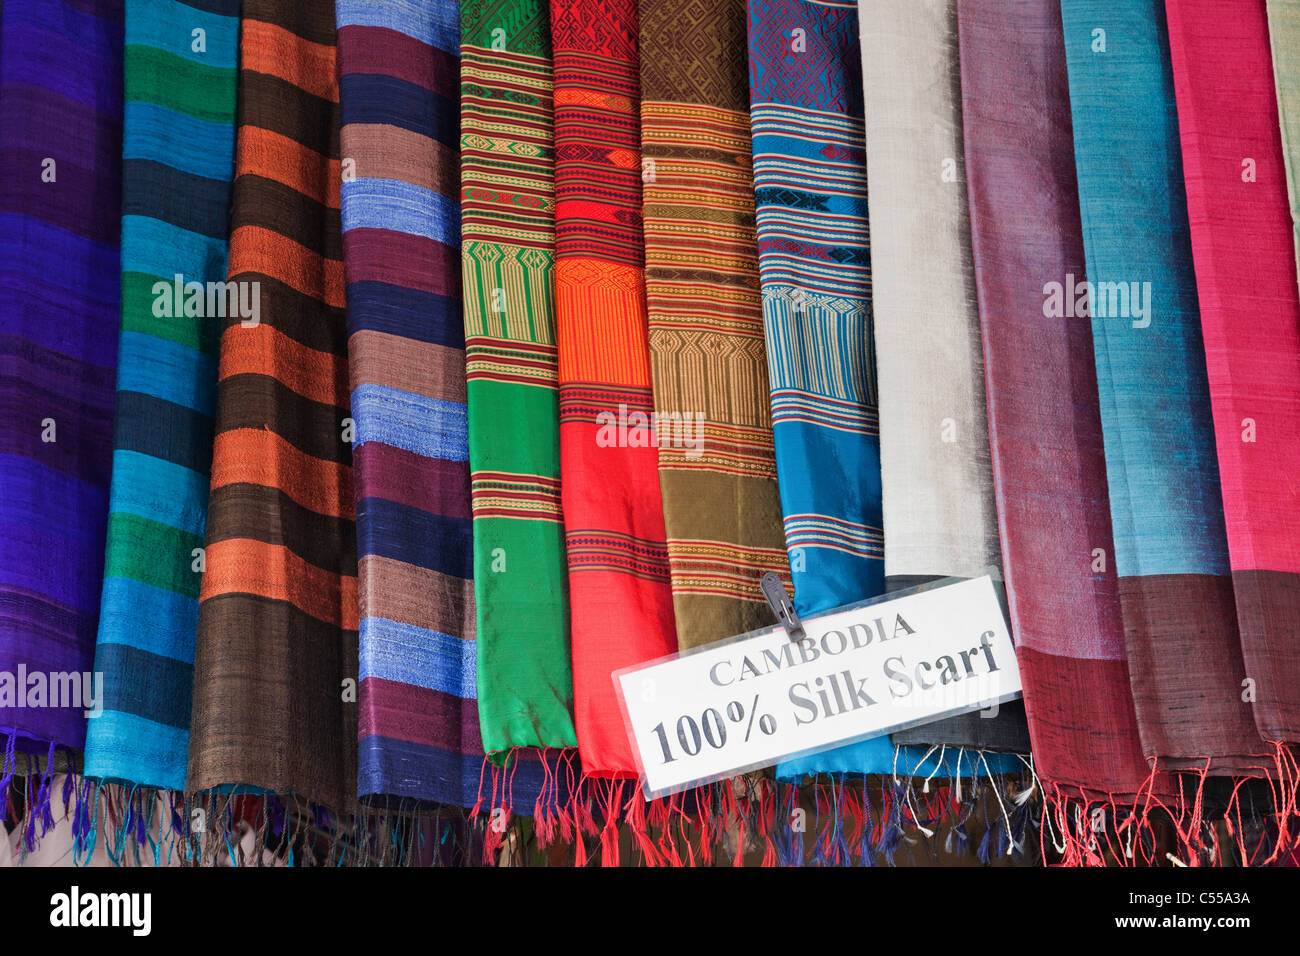 Colorful Scarves Stock Photos & Colorful Scarves Stock Images - Alamy